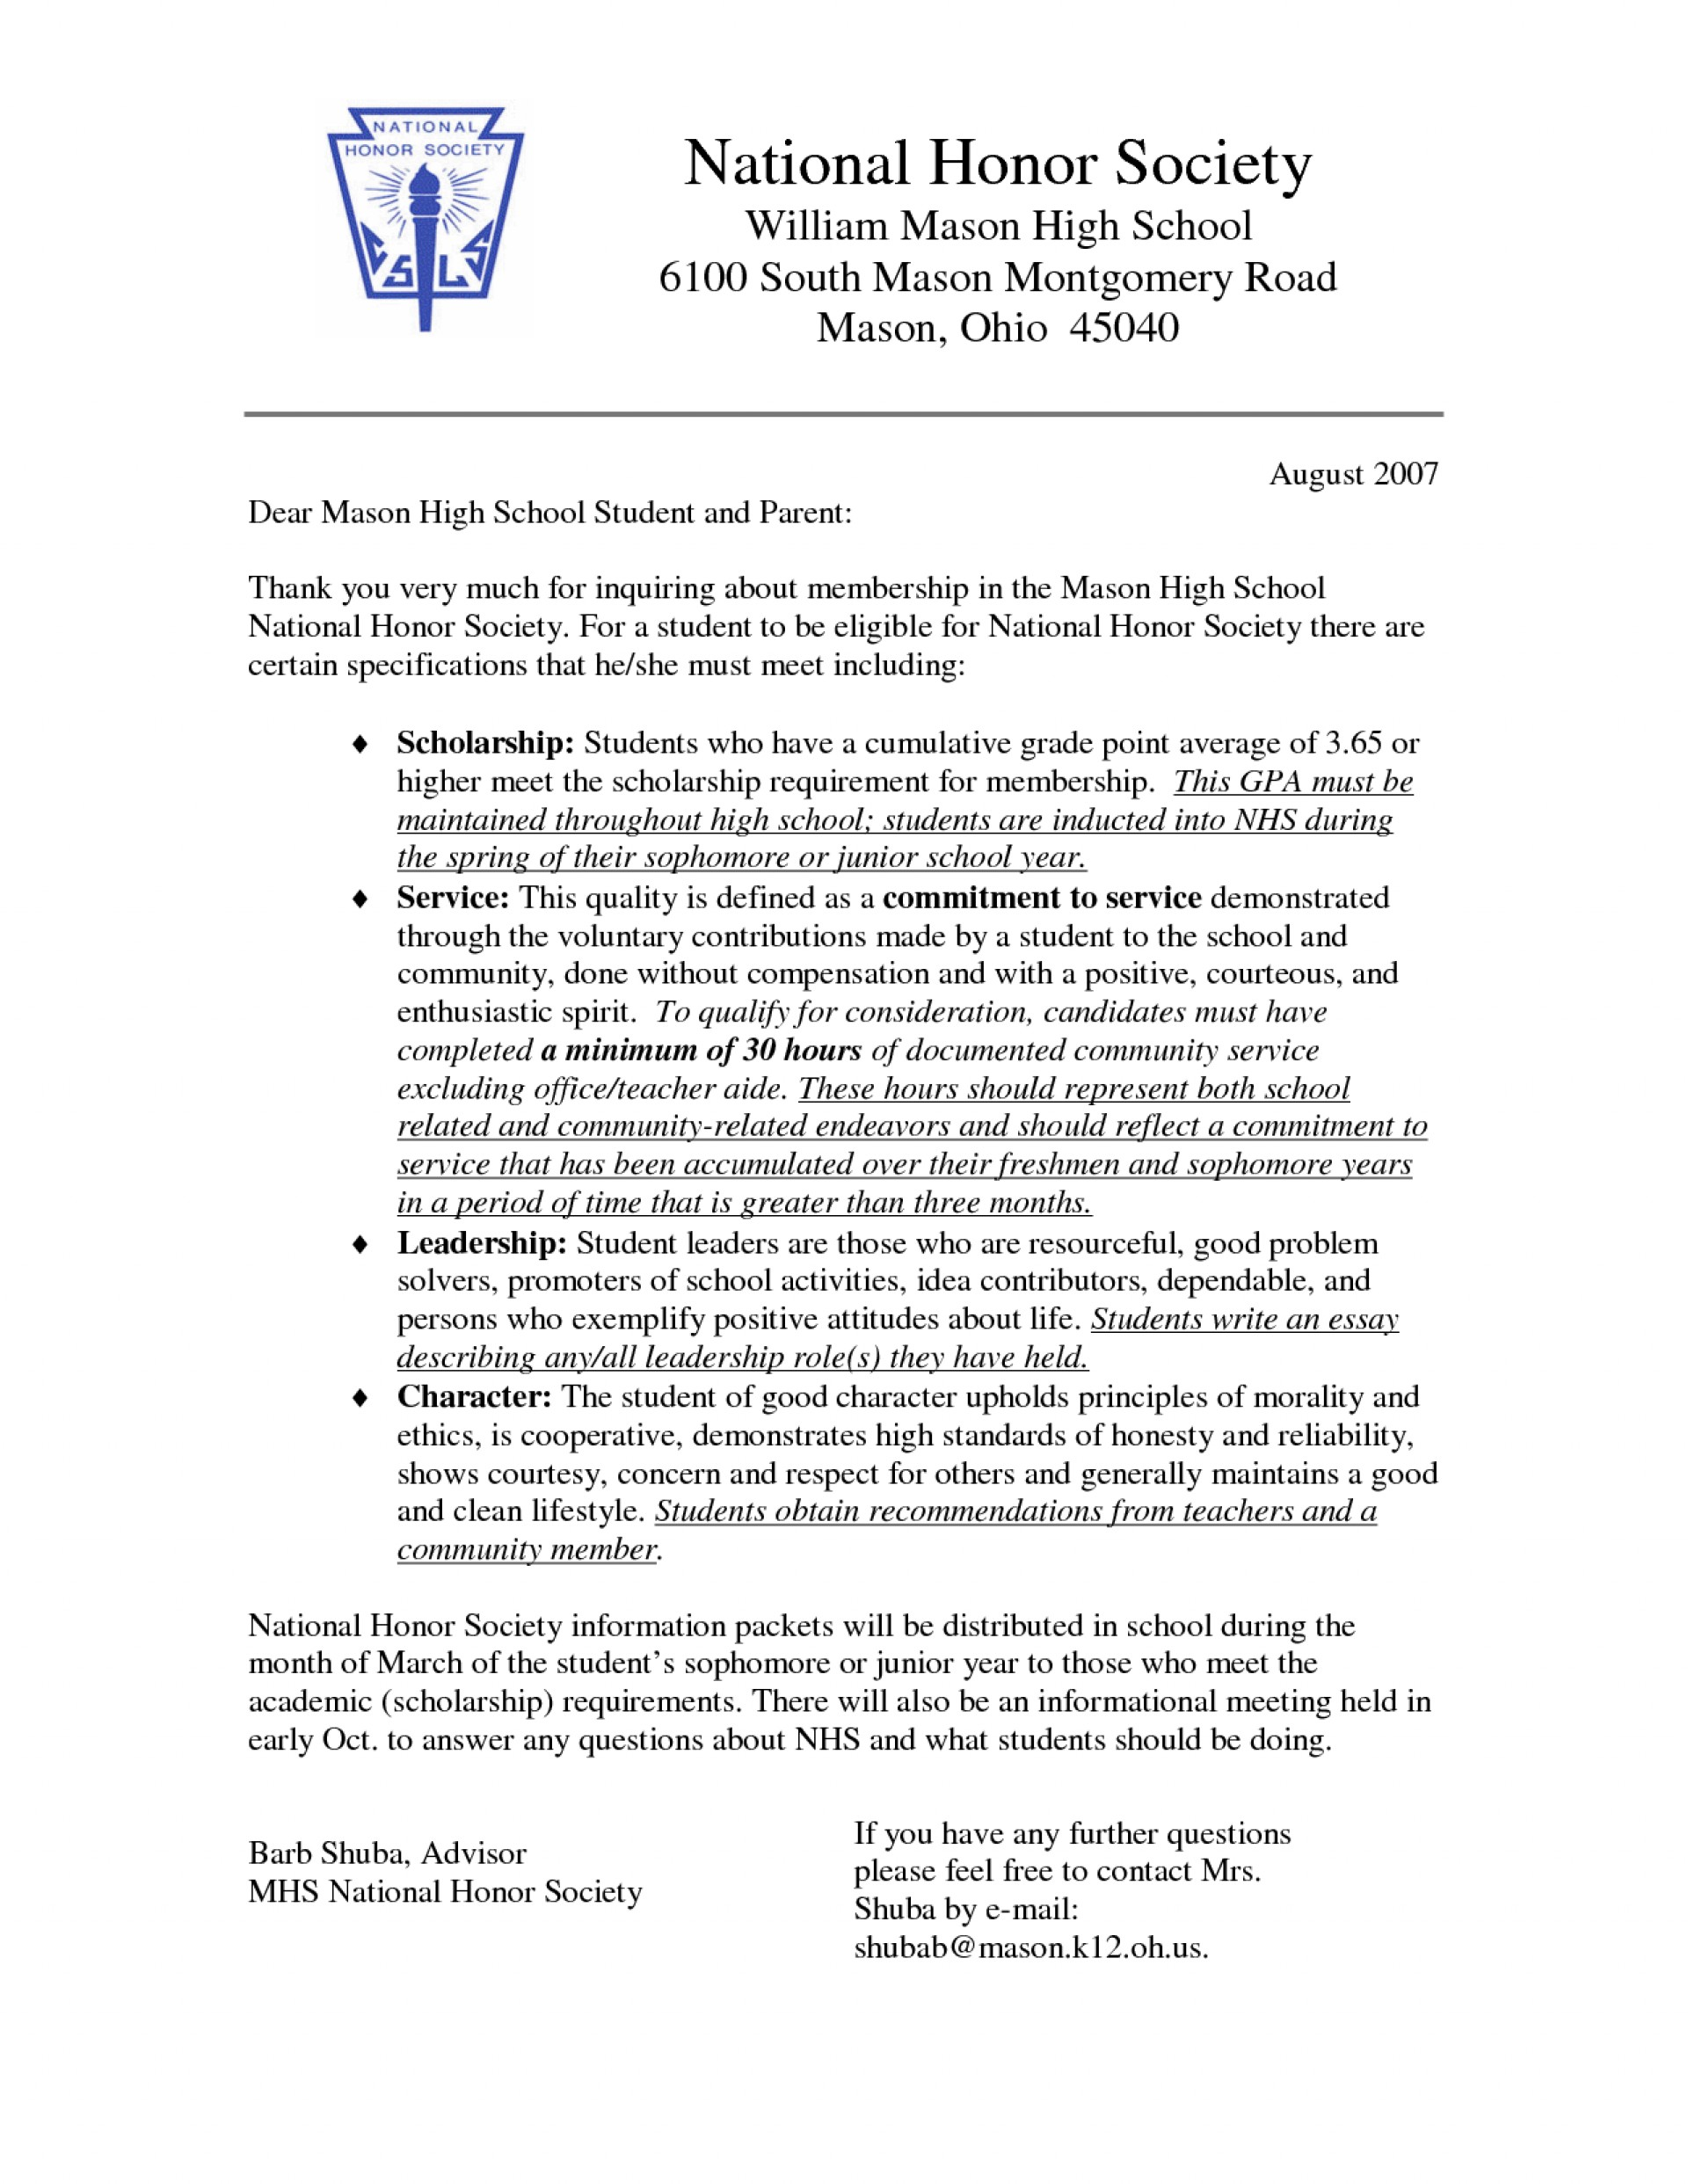 007 Best Solutions Of Sample Recommendation Letter For High School National Honor Society Also Format Layout